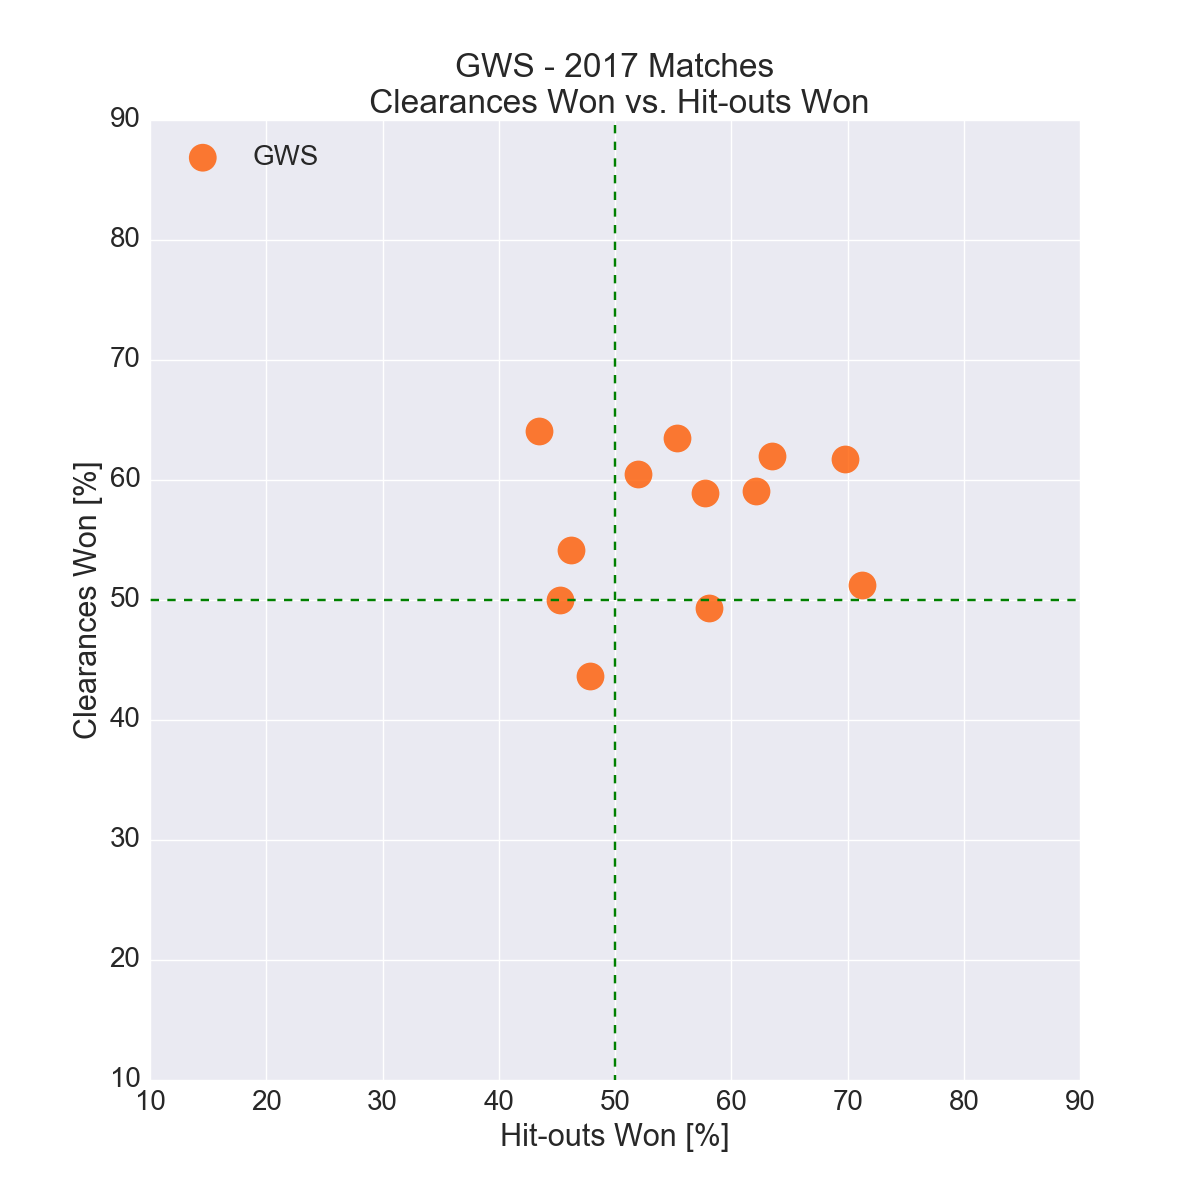 Figure-12: GWS in 2017 – Clearances Won vs. Hit-outs Won